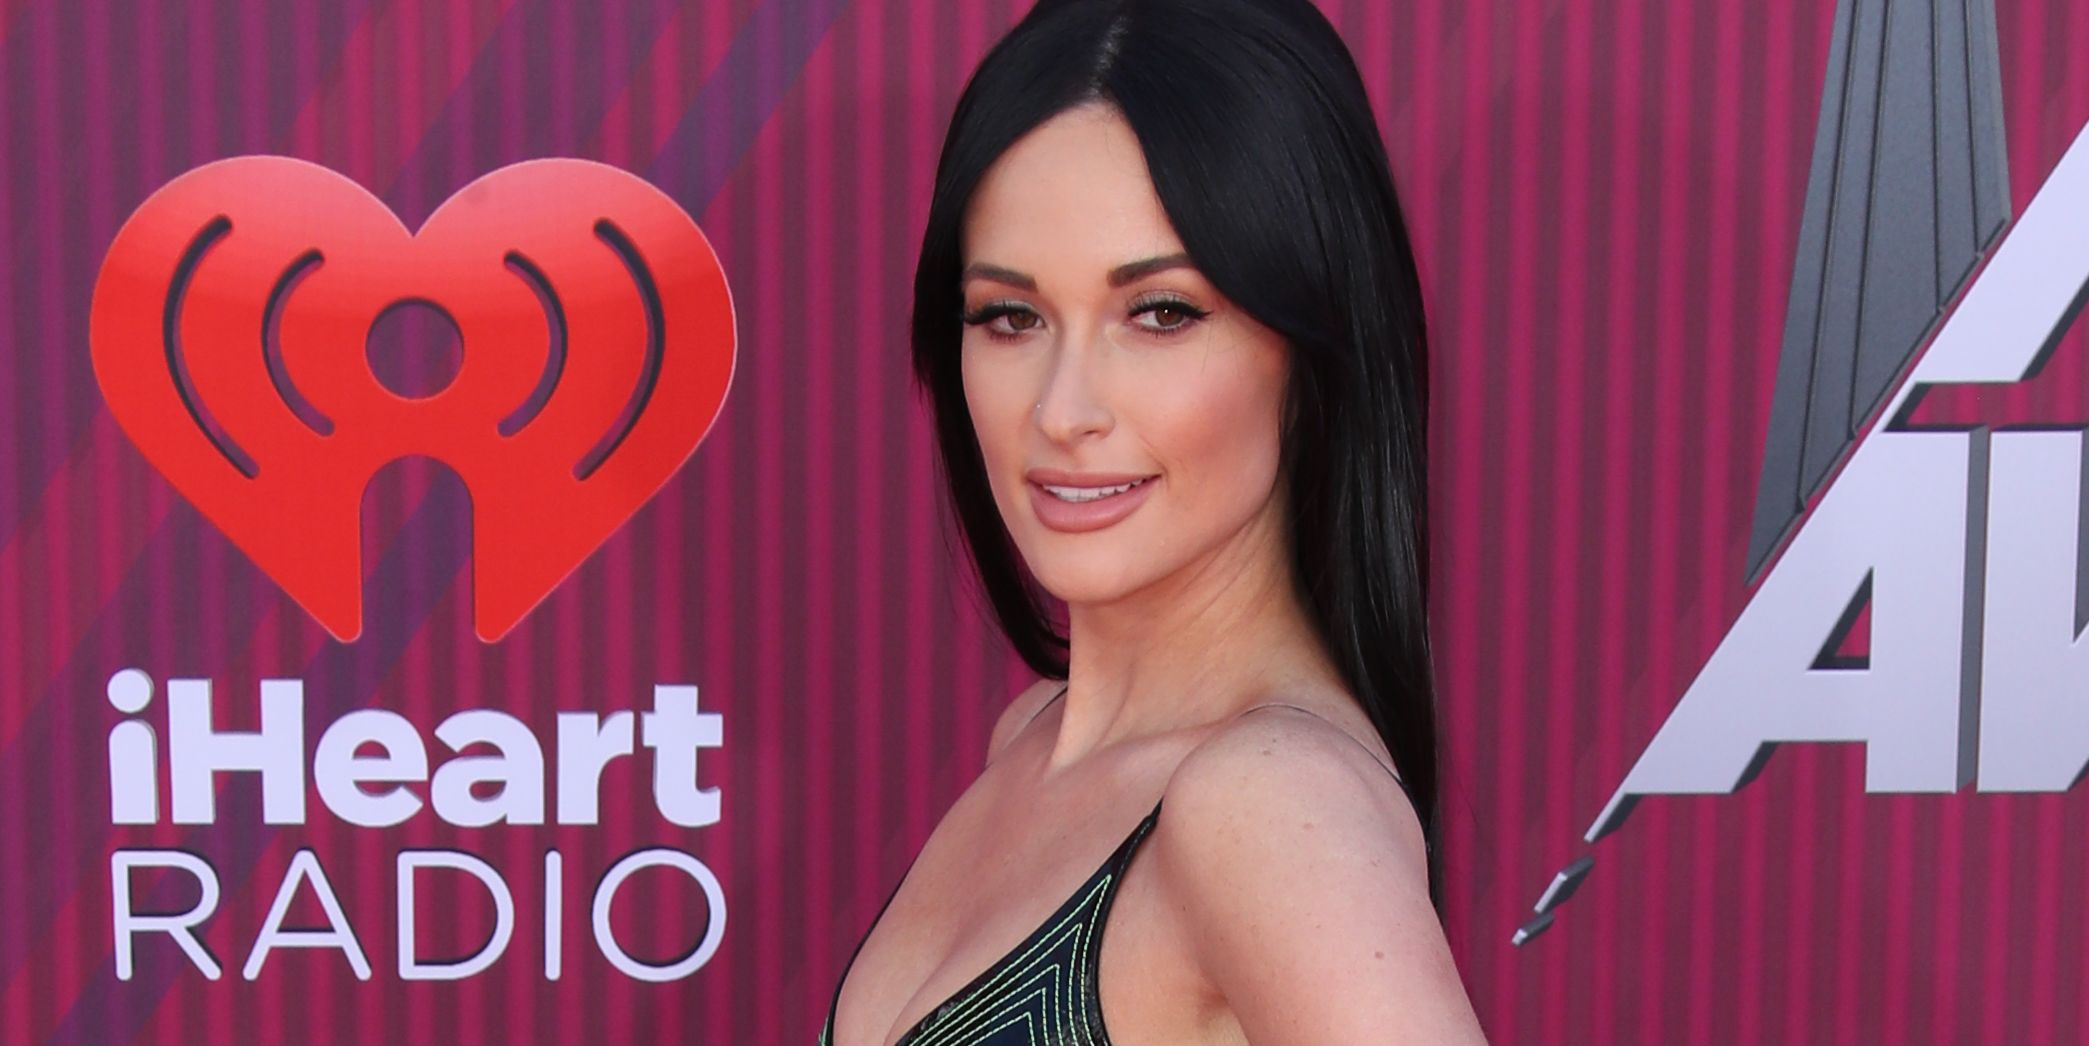 All the Looks From the 2019 iHeartRadio Music Awards Red Carpet